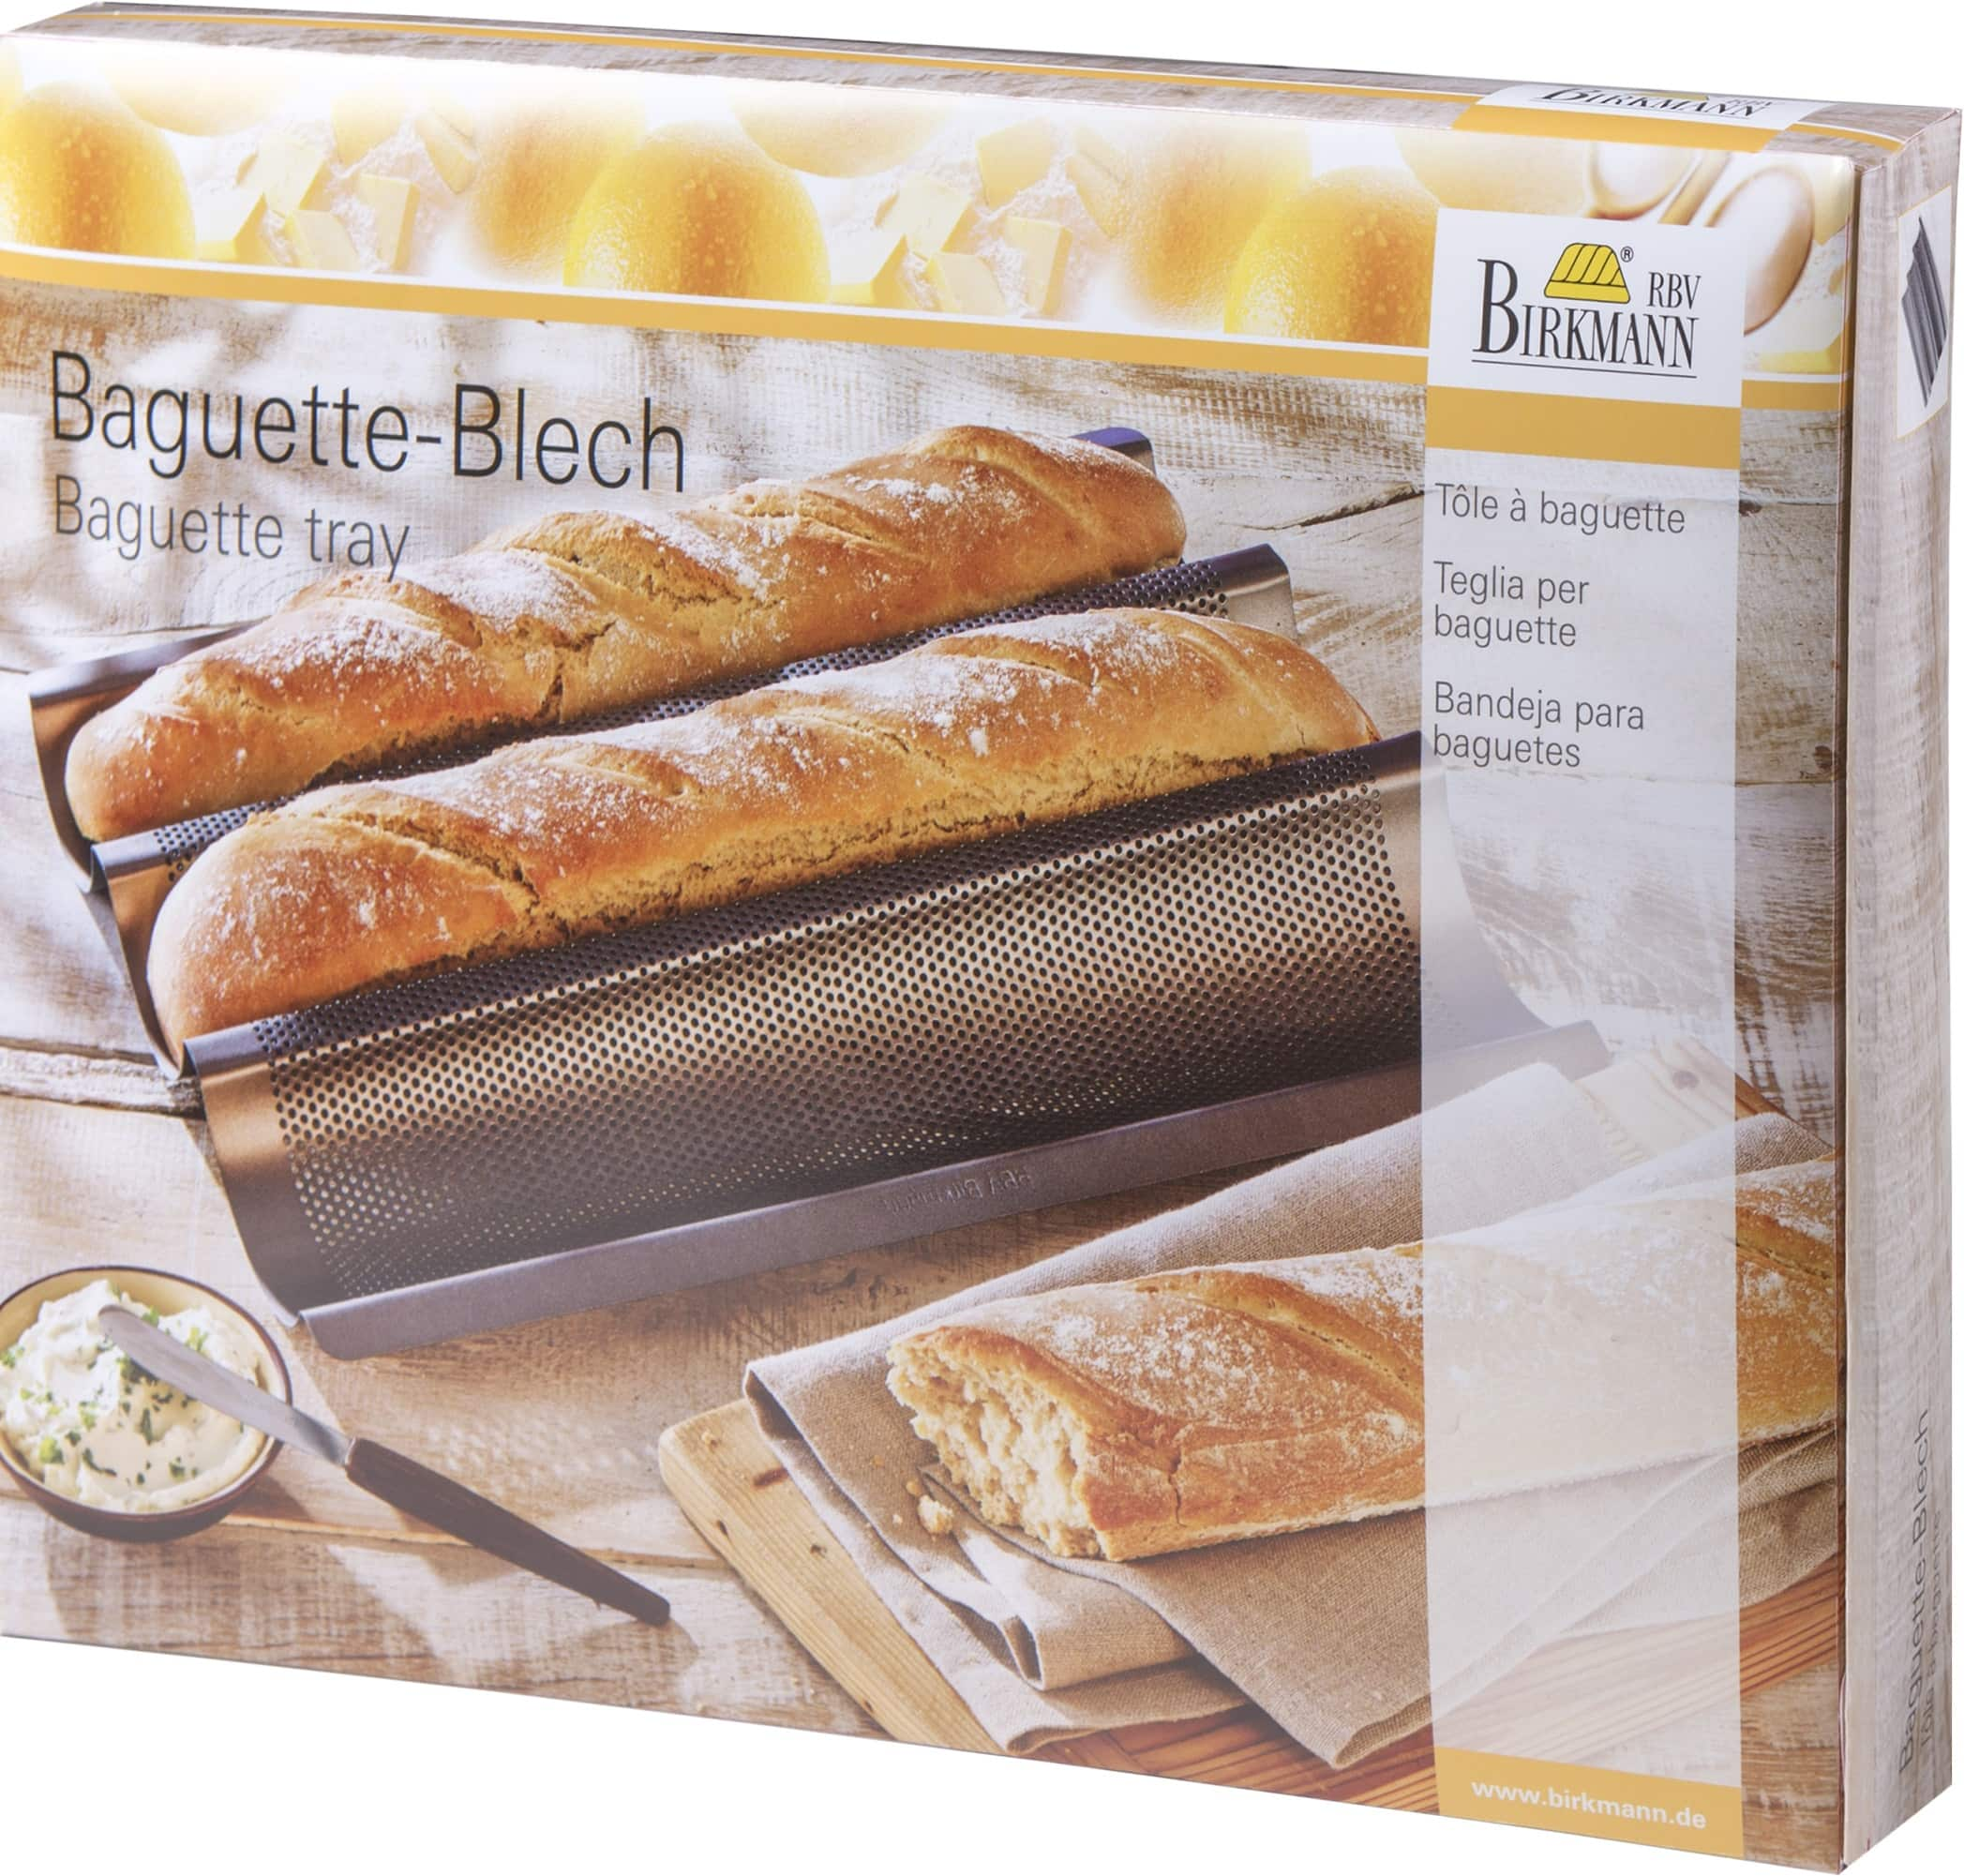 baguette blech backformen backen k chenutensilien der online shop f r. Black Bedroom Furniture Sets. Home Design Ideas